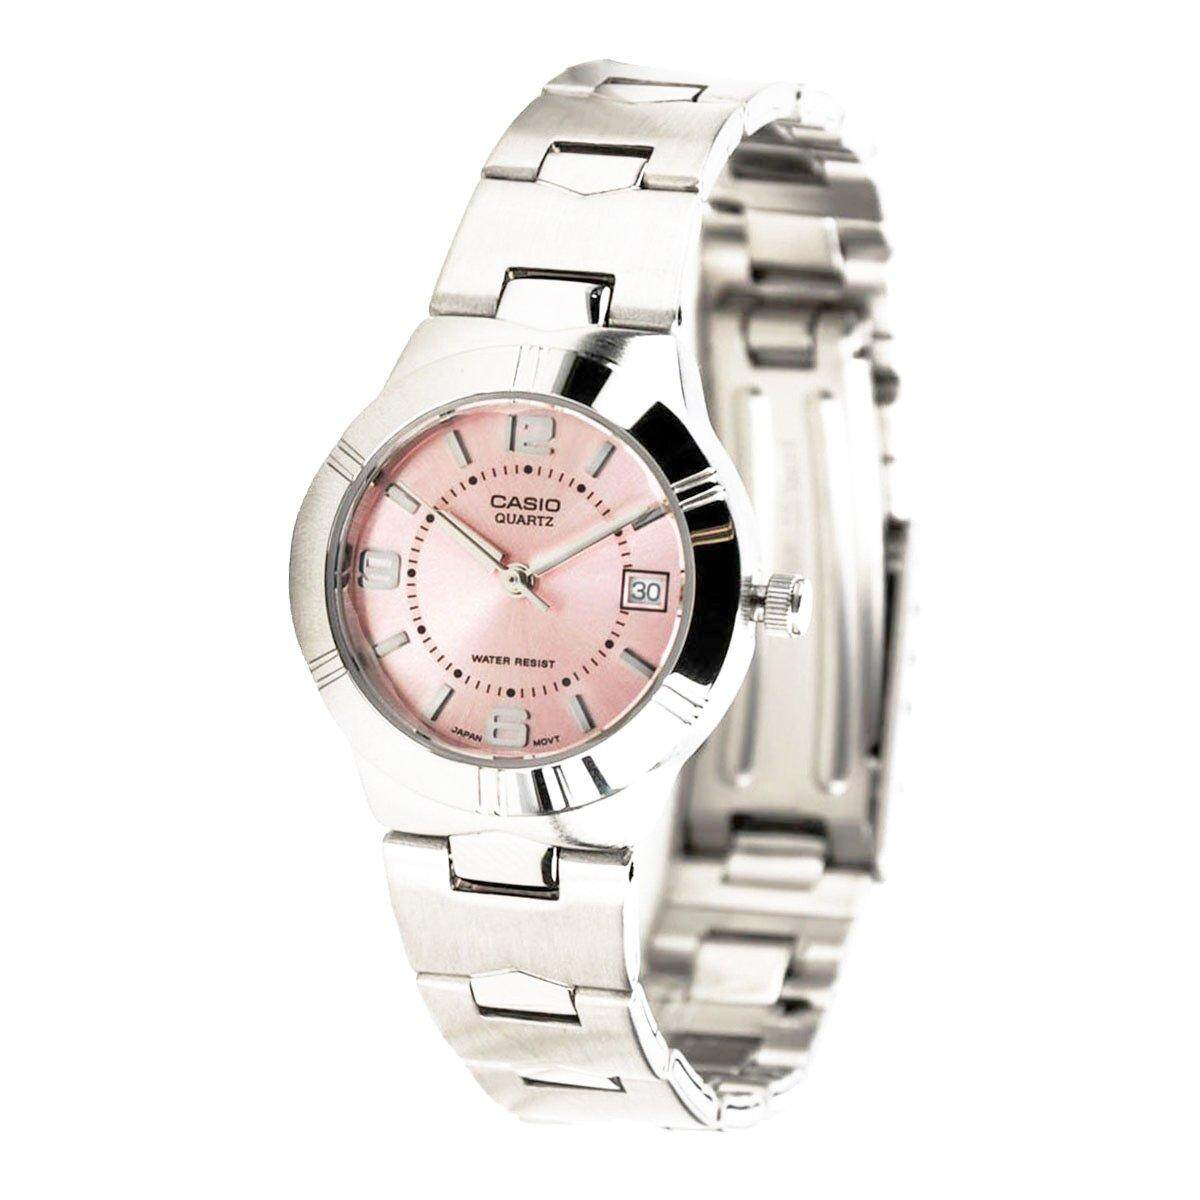 Daftar Harga Casio Mtp1314l 7a Terbaru 2018 Ltp 1095e 7b Womenamp039s Quartz Watch Buy Sell Cheapest Enticer Best Quality Product Deals Silver Stainless Steel Case